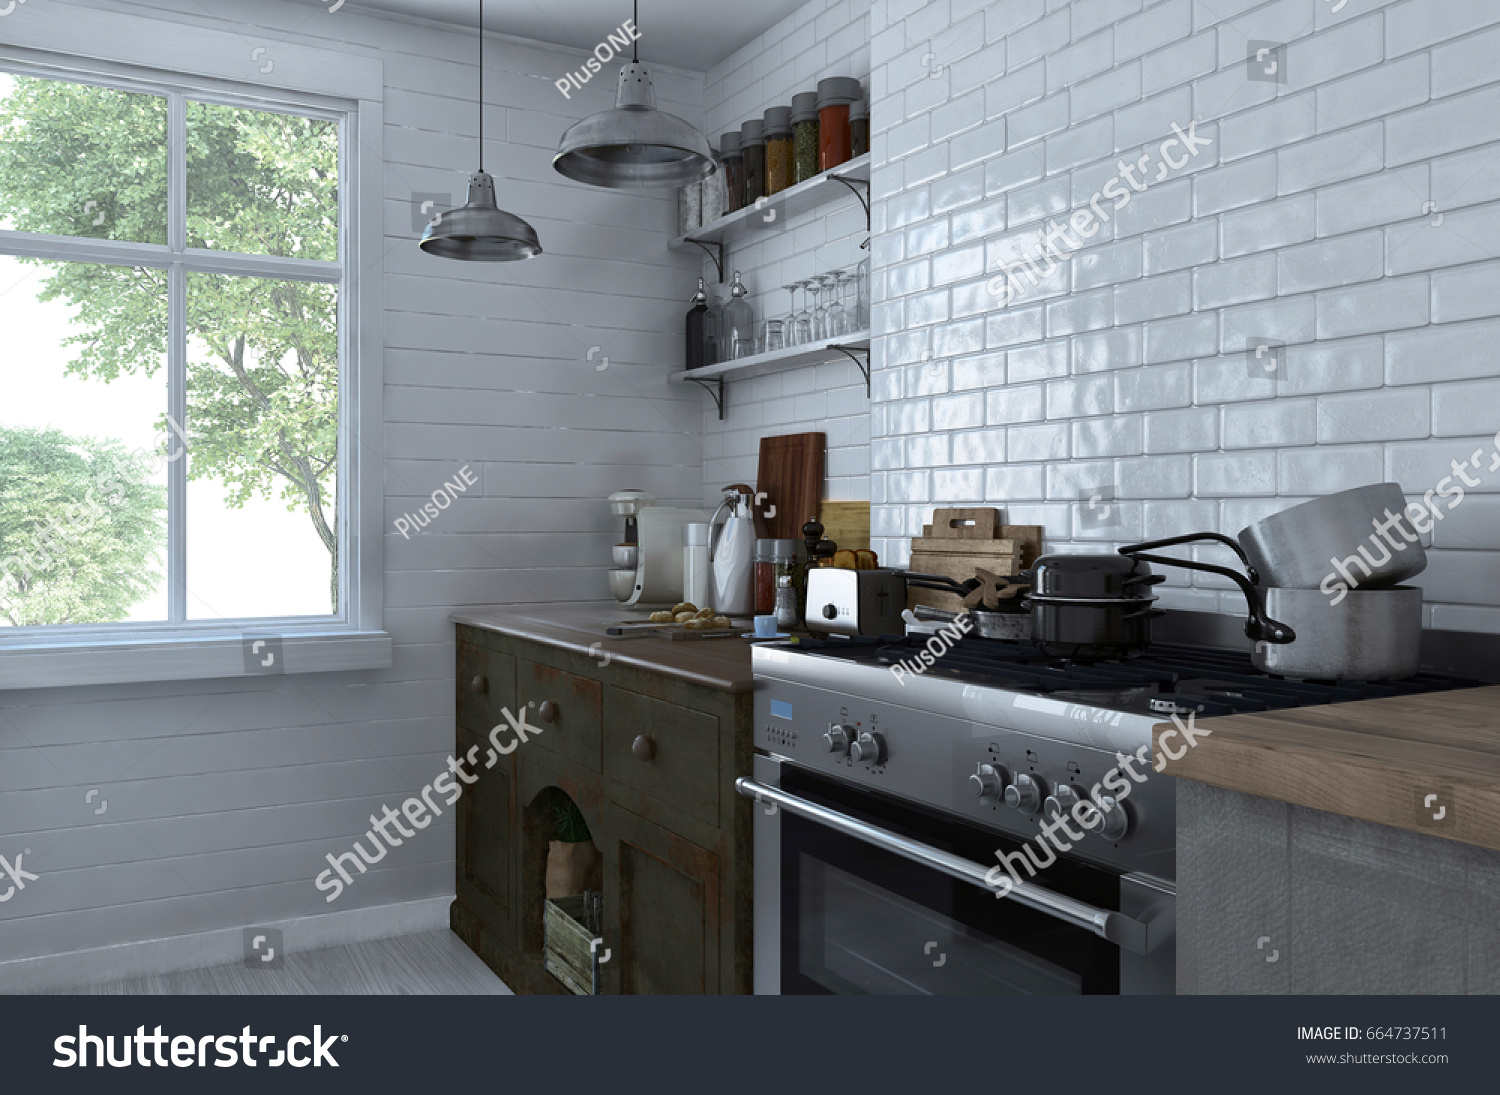 Small Compact Kitchen Interior Stove Cabinets Stock Illustration ...